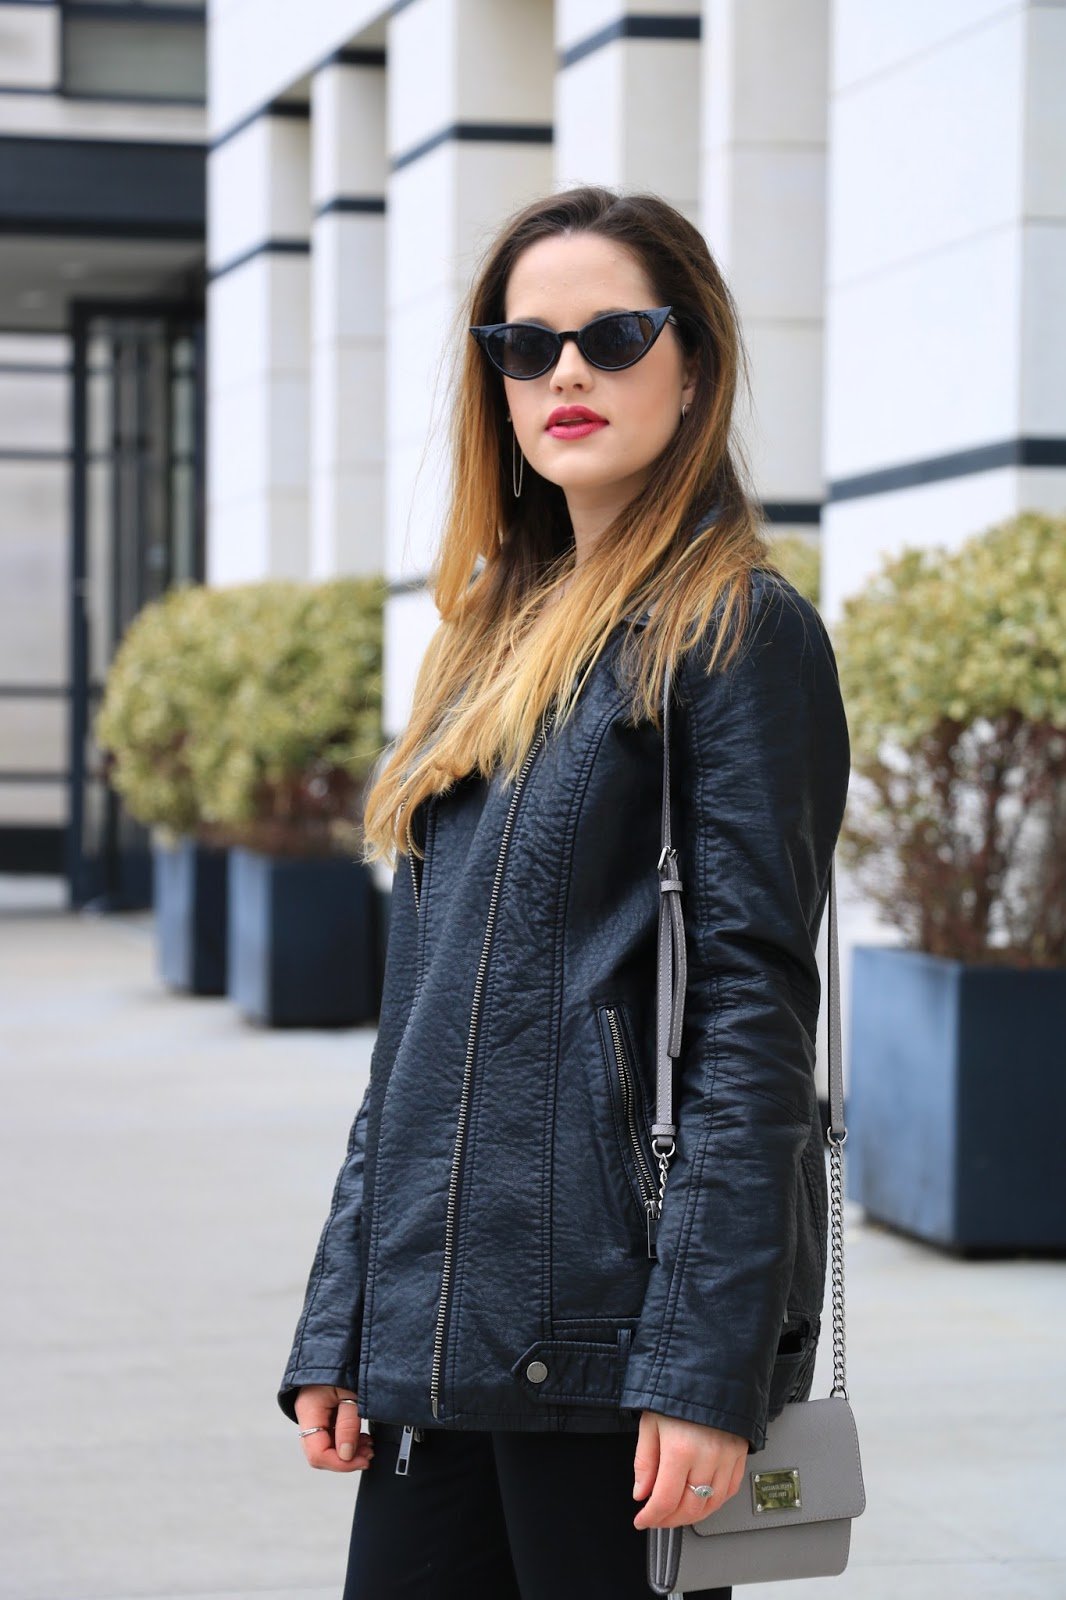 Nyc fashion blogger Kathleen Harper wearing an oversized leather jacket